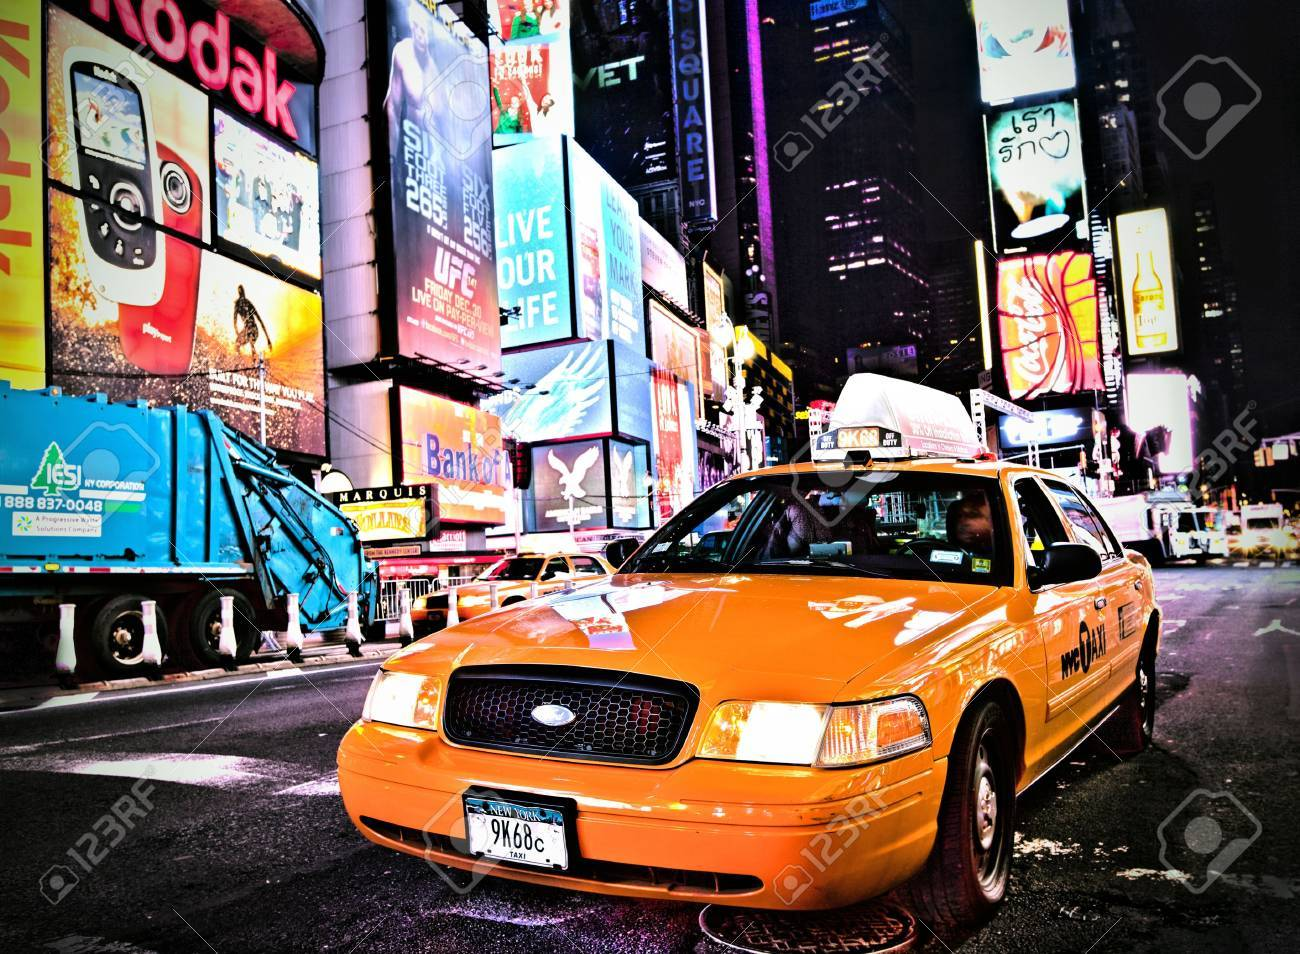 NEW YORK CITY - DEC 28: Times Square ,is a busy tourist intersection of neon art and commerce and is an iconic street of New York City and America, December 28th, 2011 in Manhattan, New York City.  Stock Photo - 12160354